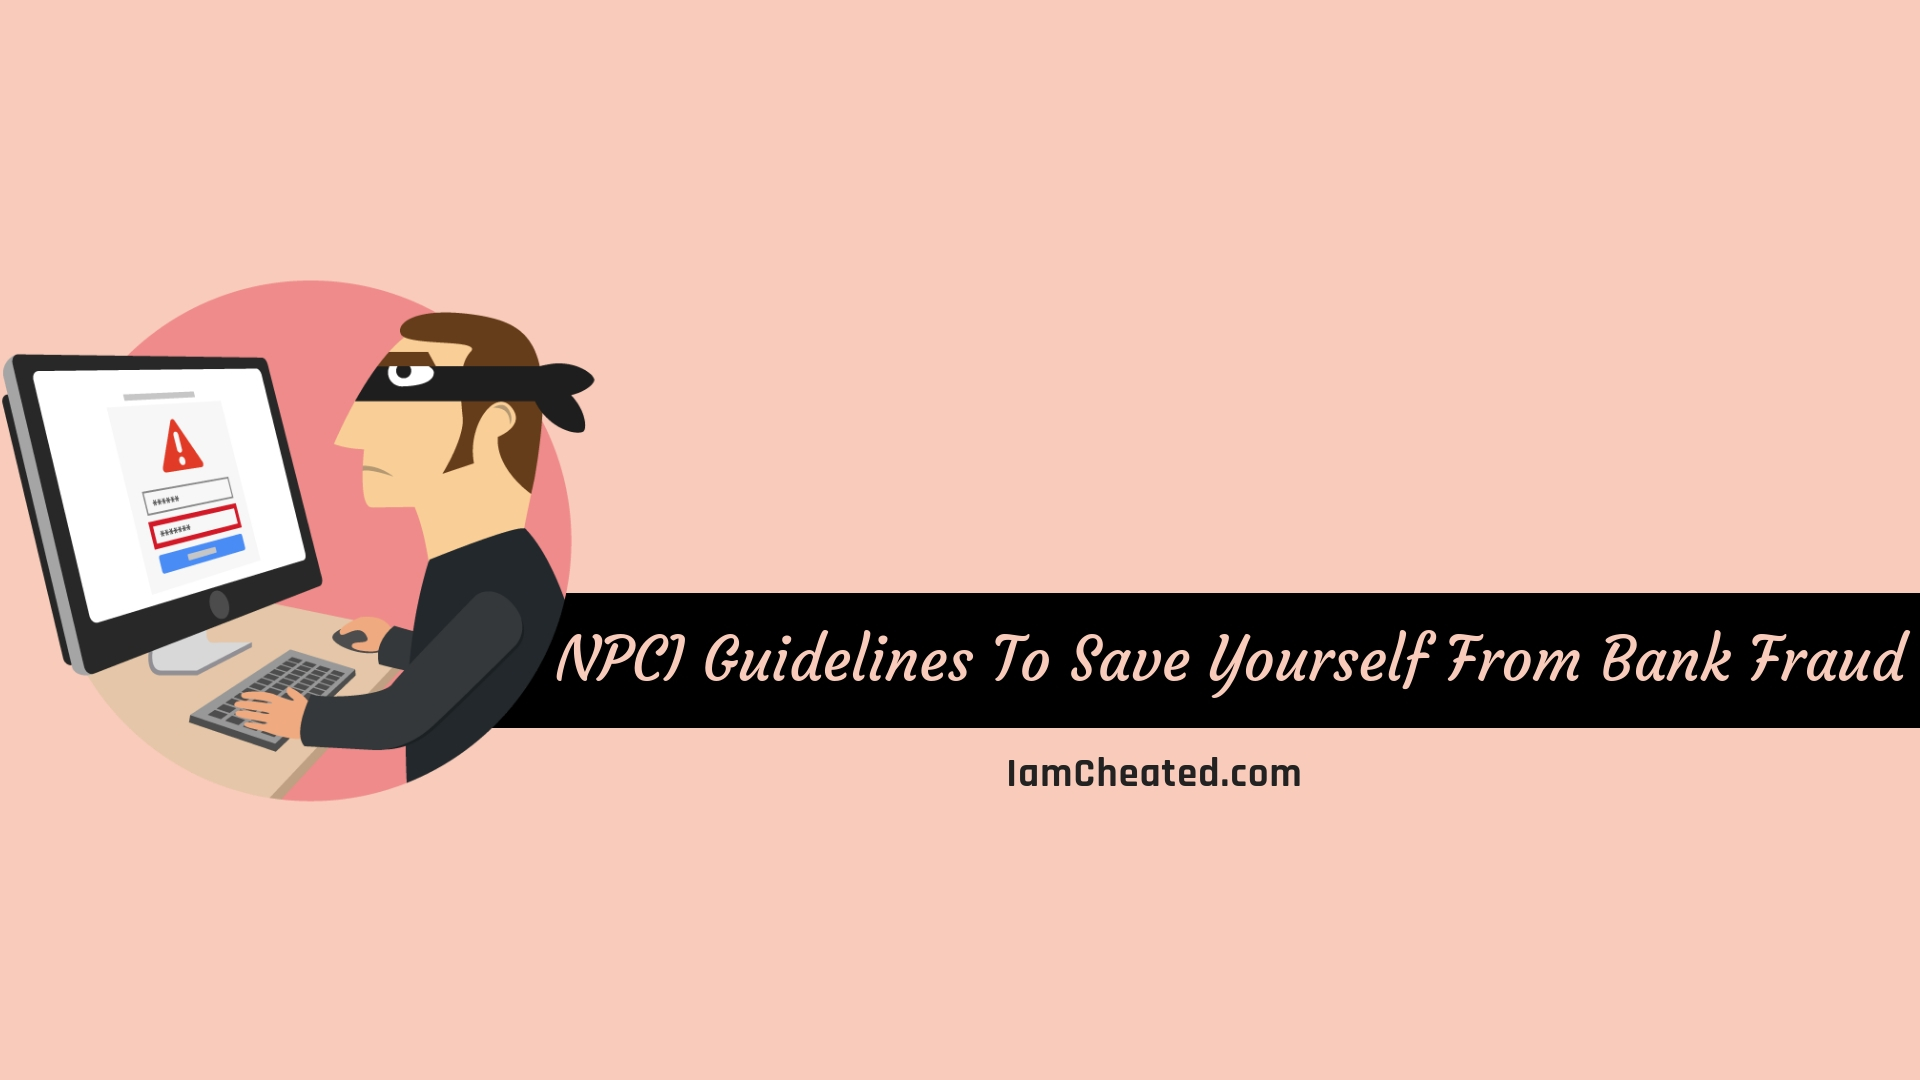 NPCI Guidelines To Save Yourself From Bank Fraud